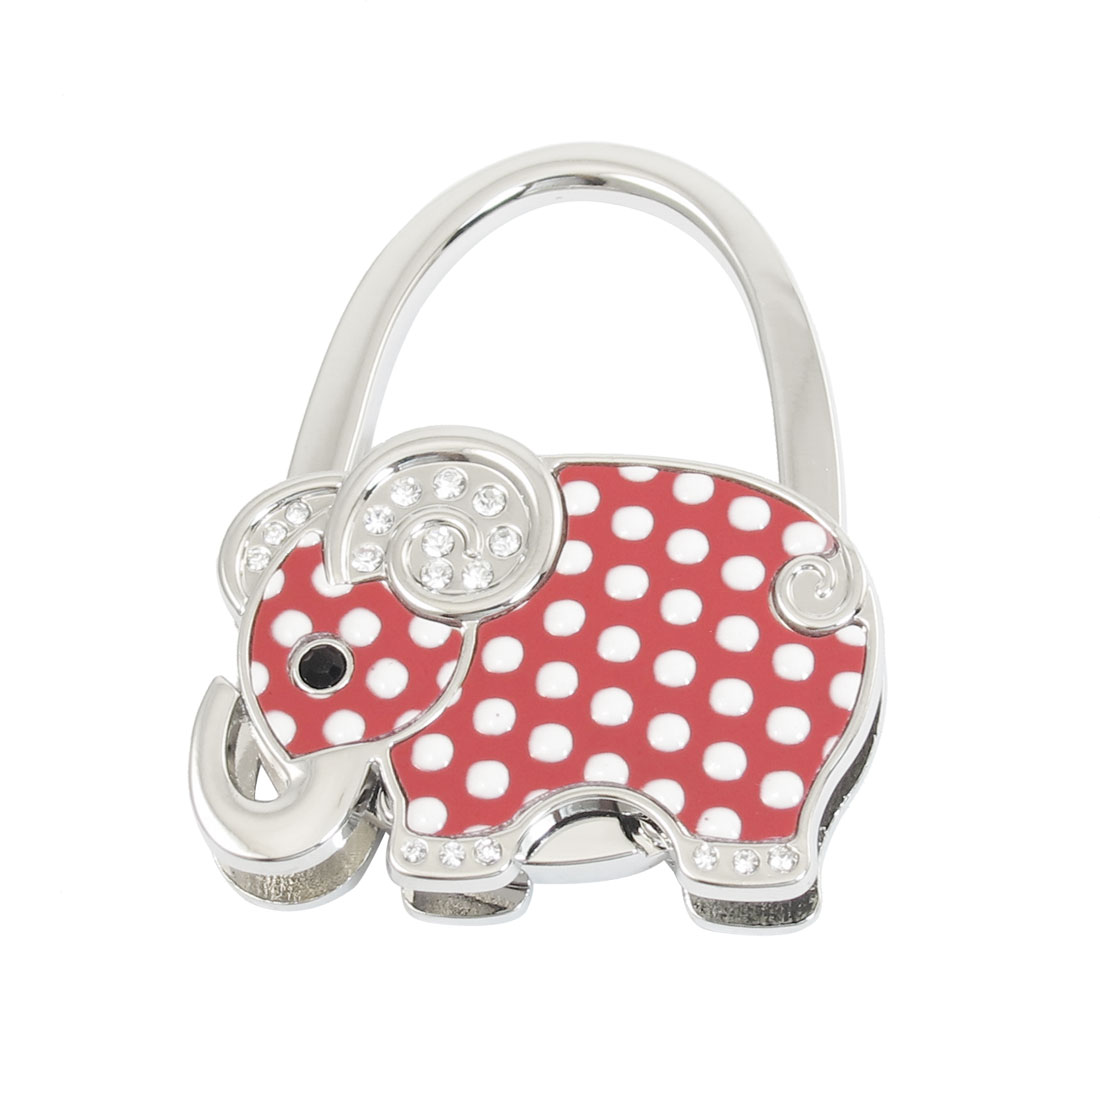 Women Pink Elephant Shape Design Silver Tone Foldable Hand Bag Purse Hanger Hook